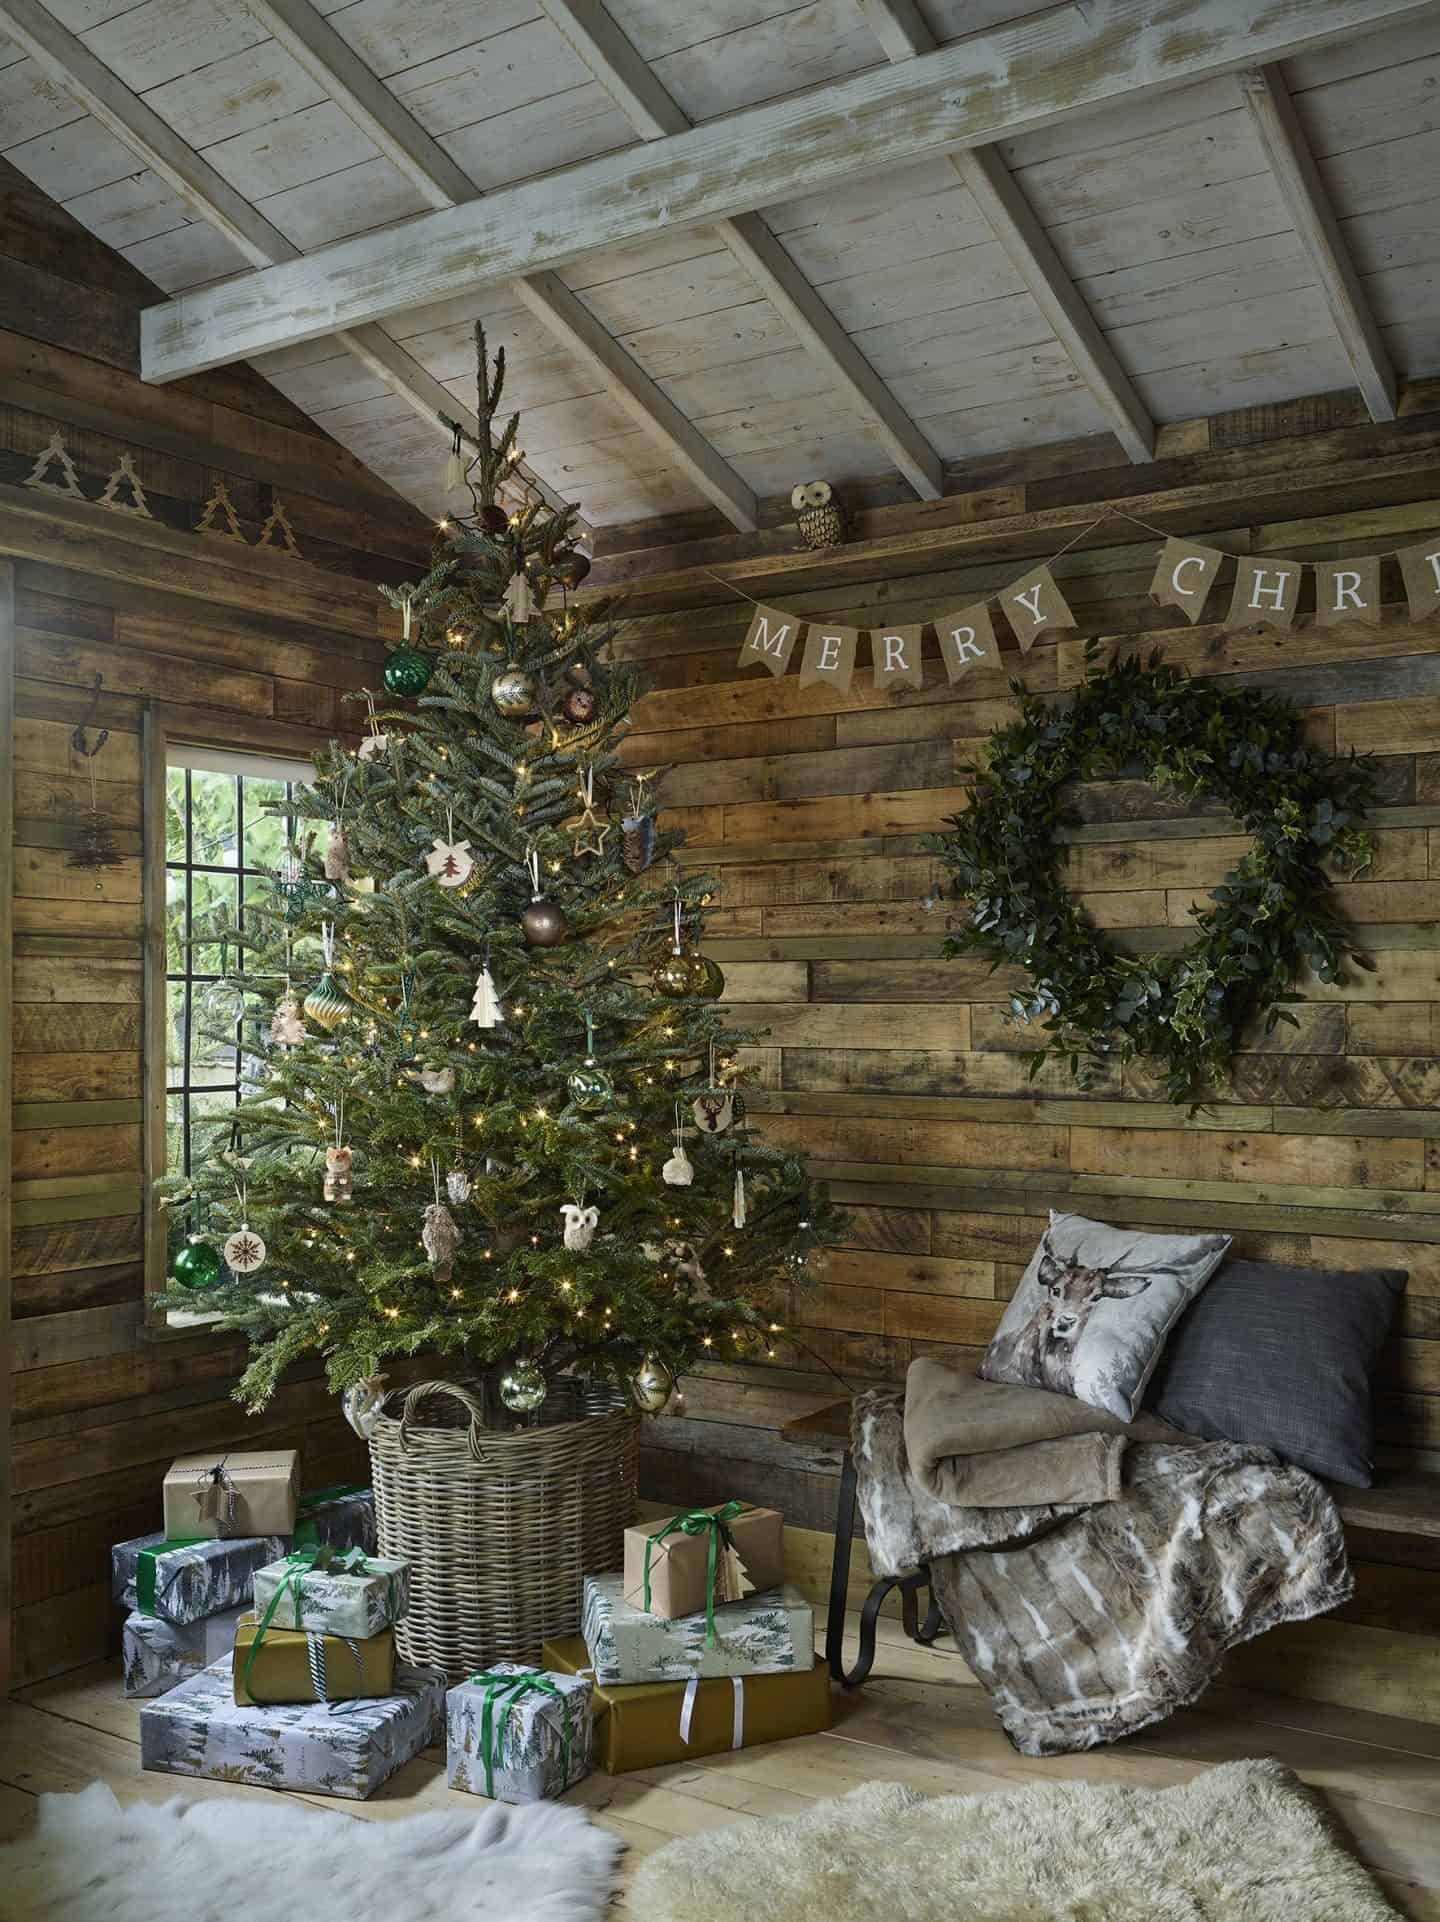 Dobbies Enchanted Garden Christmas Trend features organic and natural materials and textures, lots of green, woodland animals and touches of gold for added glamour.